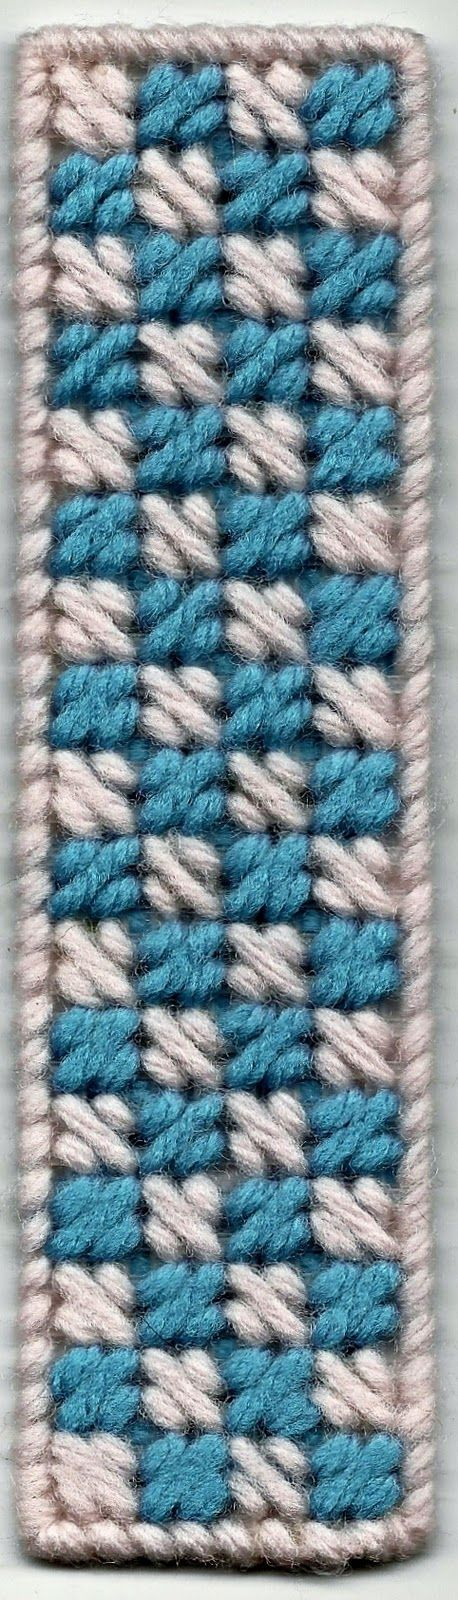 plastic canvas bookmark - doing this in teal & white for cervical cancer awareness